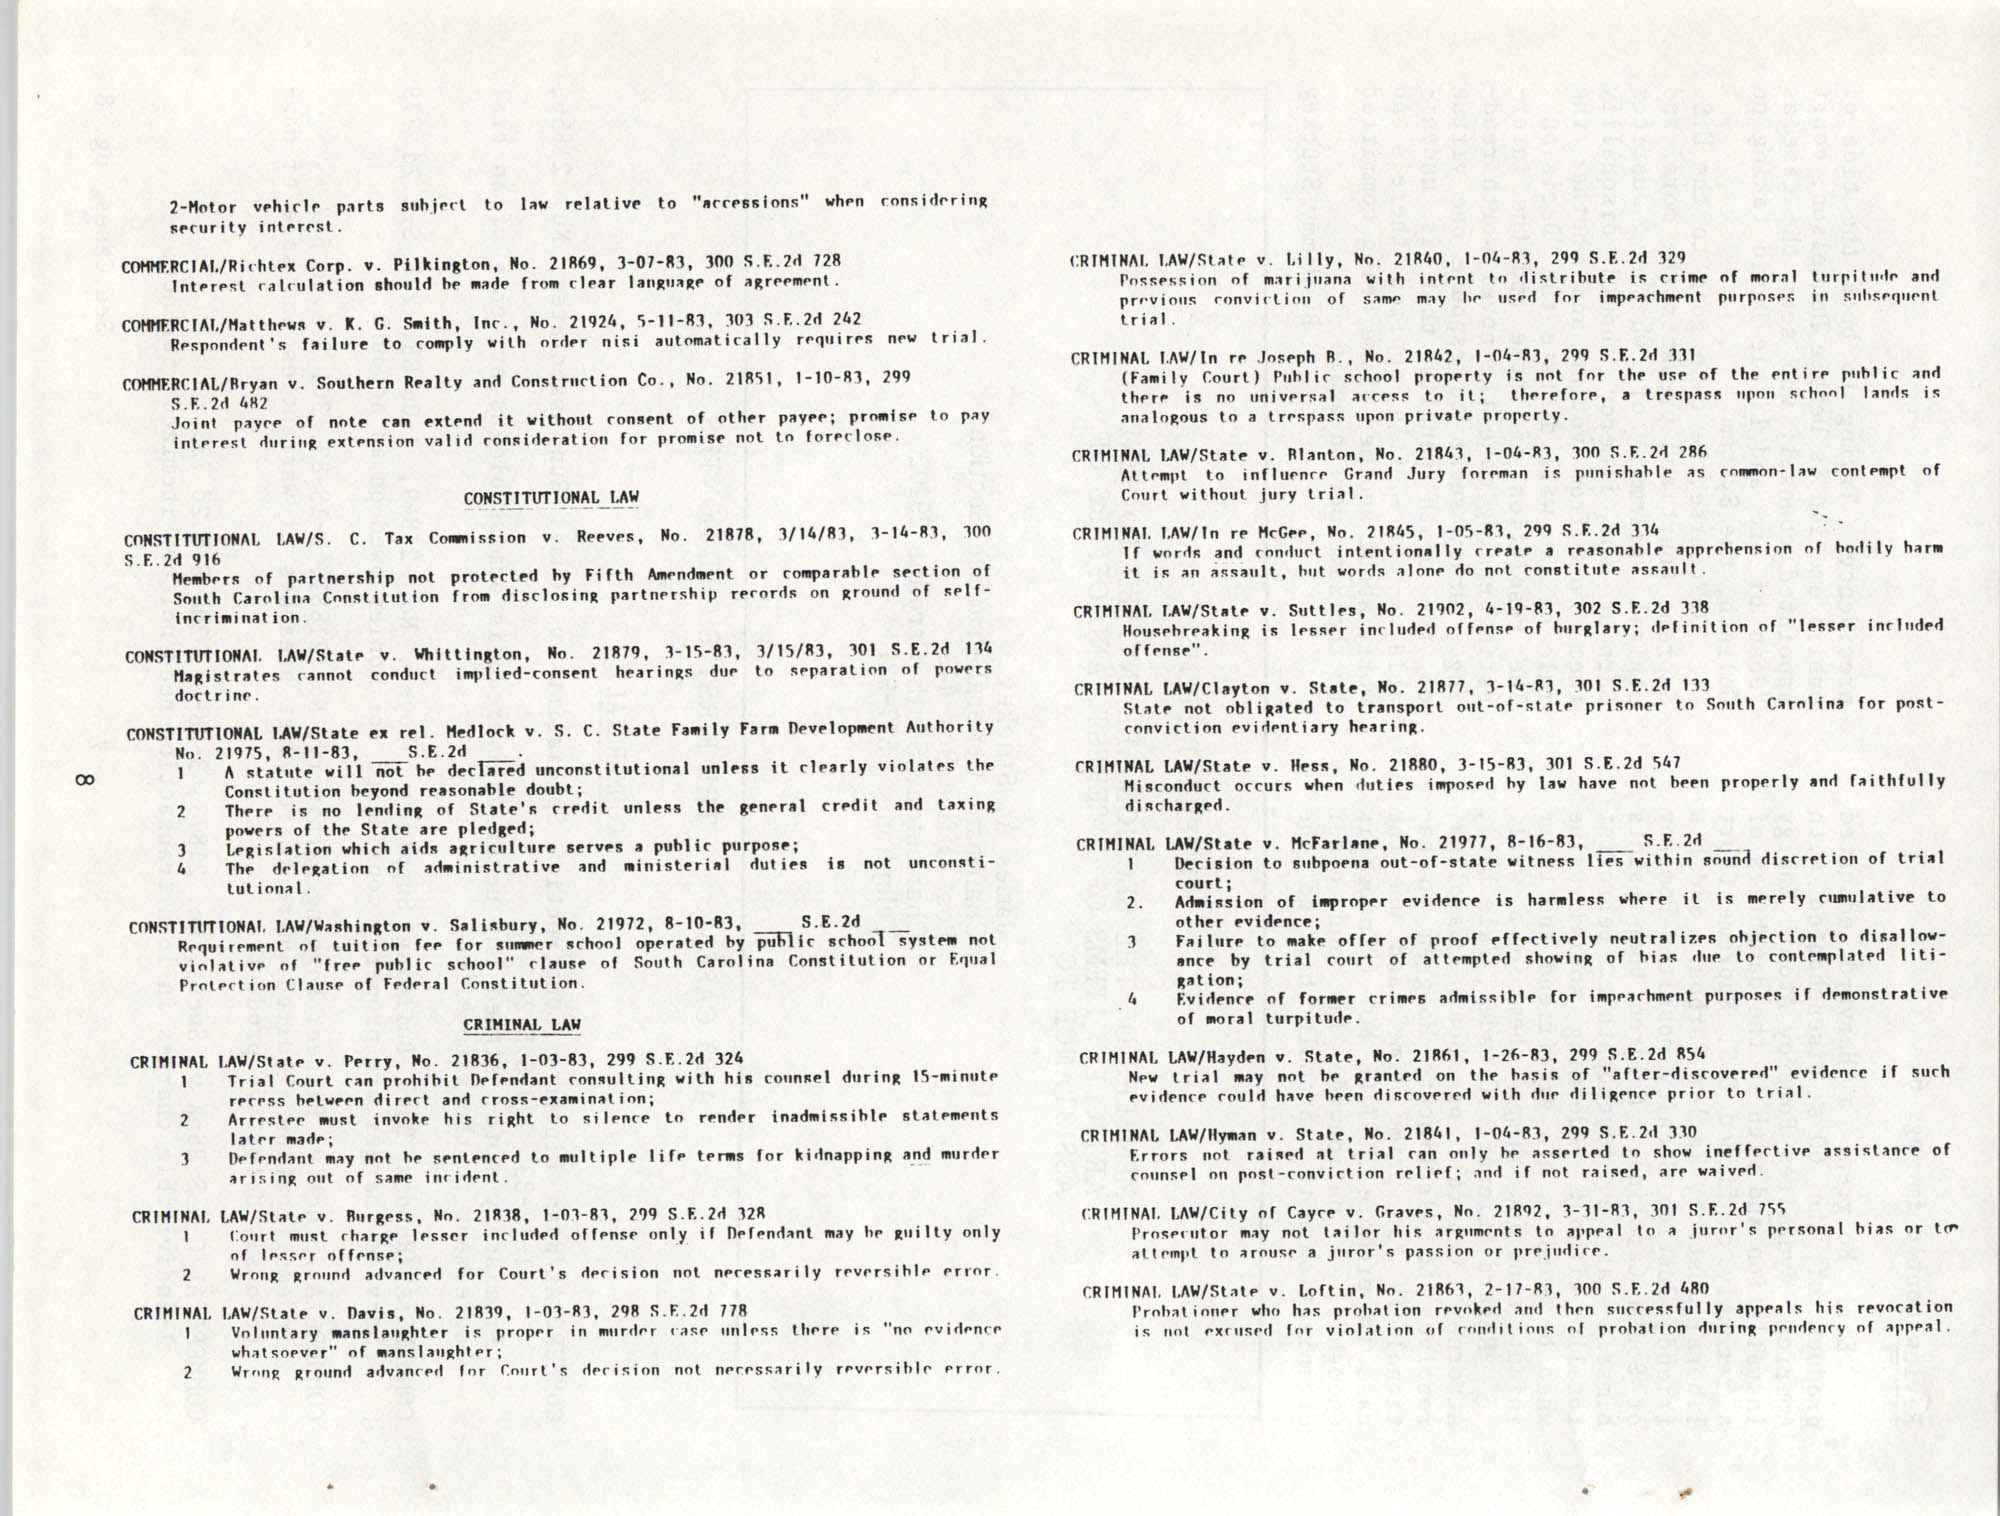 The General Practice Section Update, Vol. 1 No. 1, South Carolina Bar, November 1983, Page 8